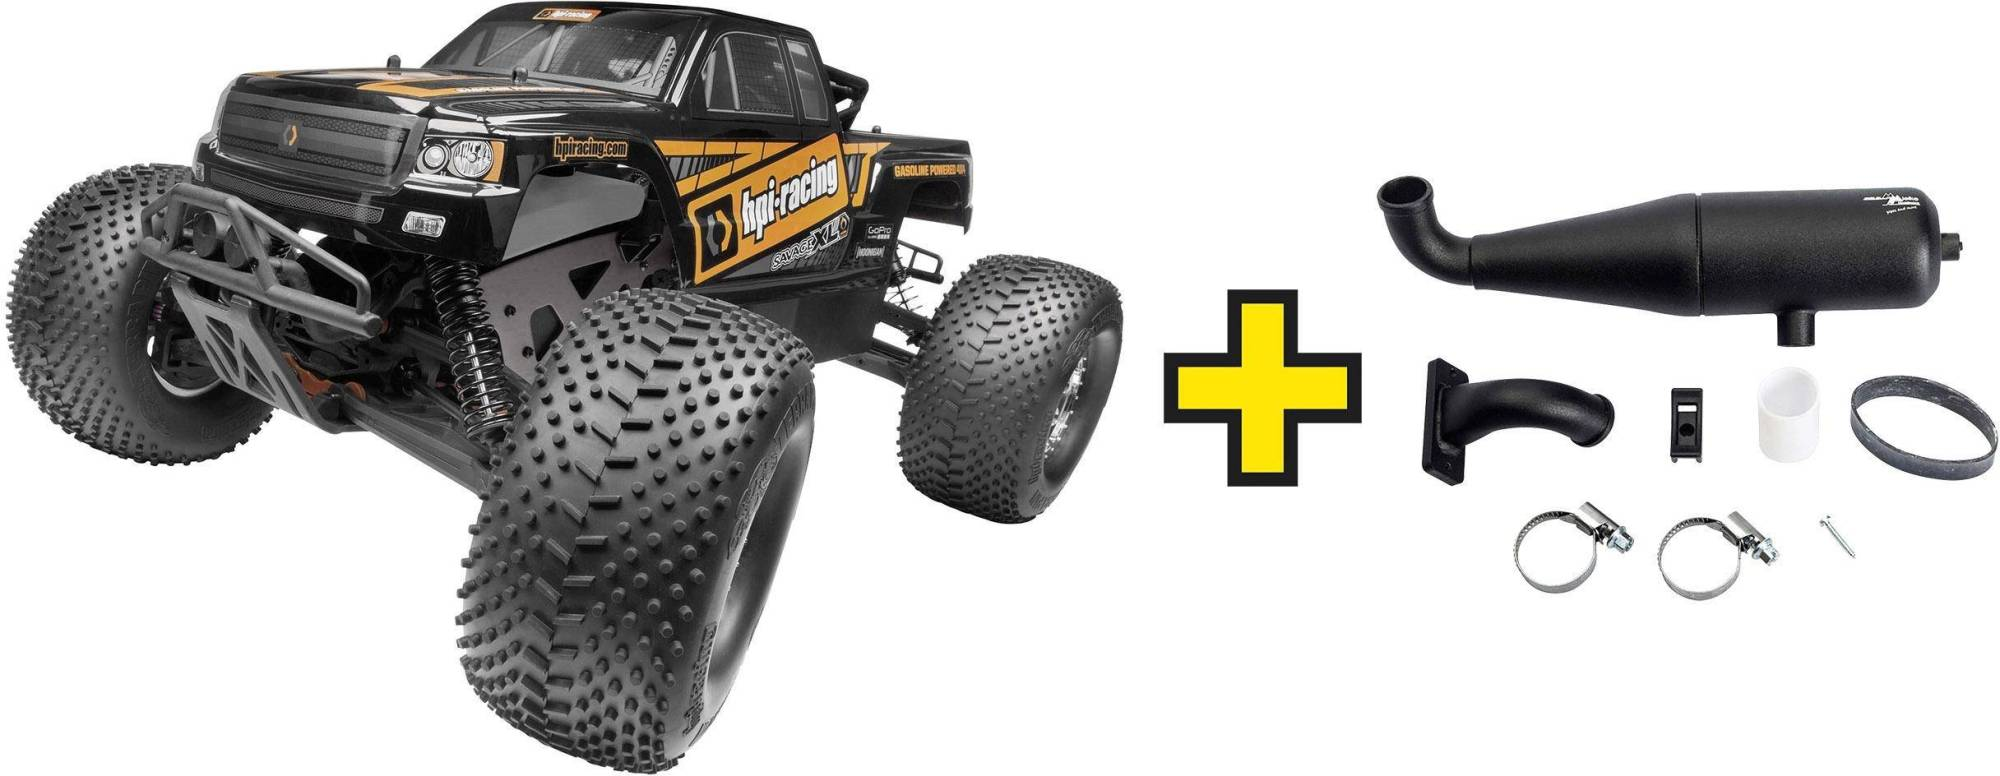 hight resolution of hpi racing savage xl octane 1 8xl rc model car petrol monster truck 4wd rtr